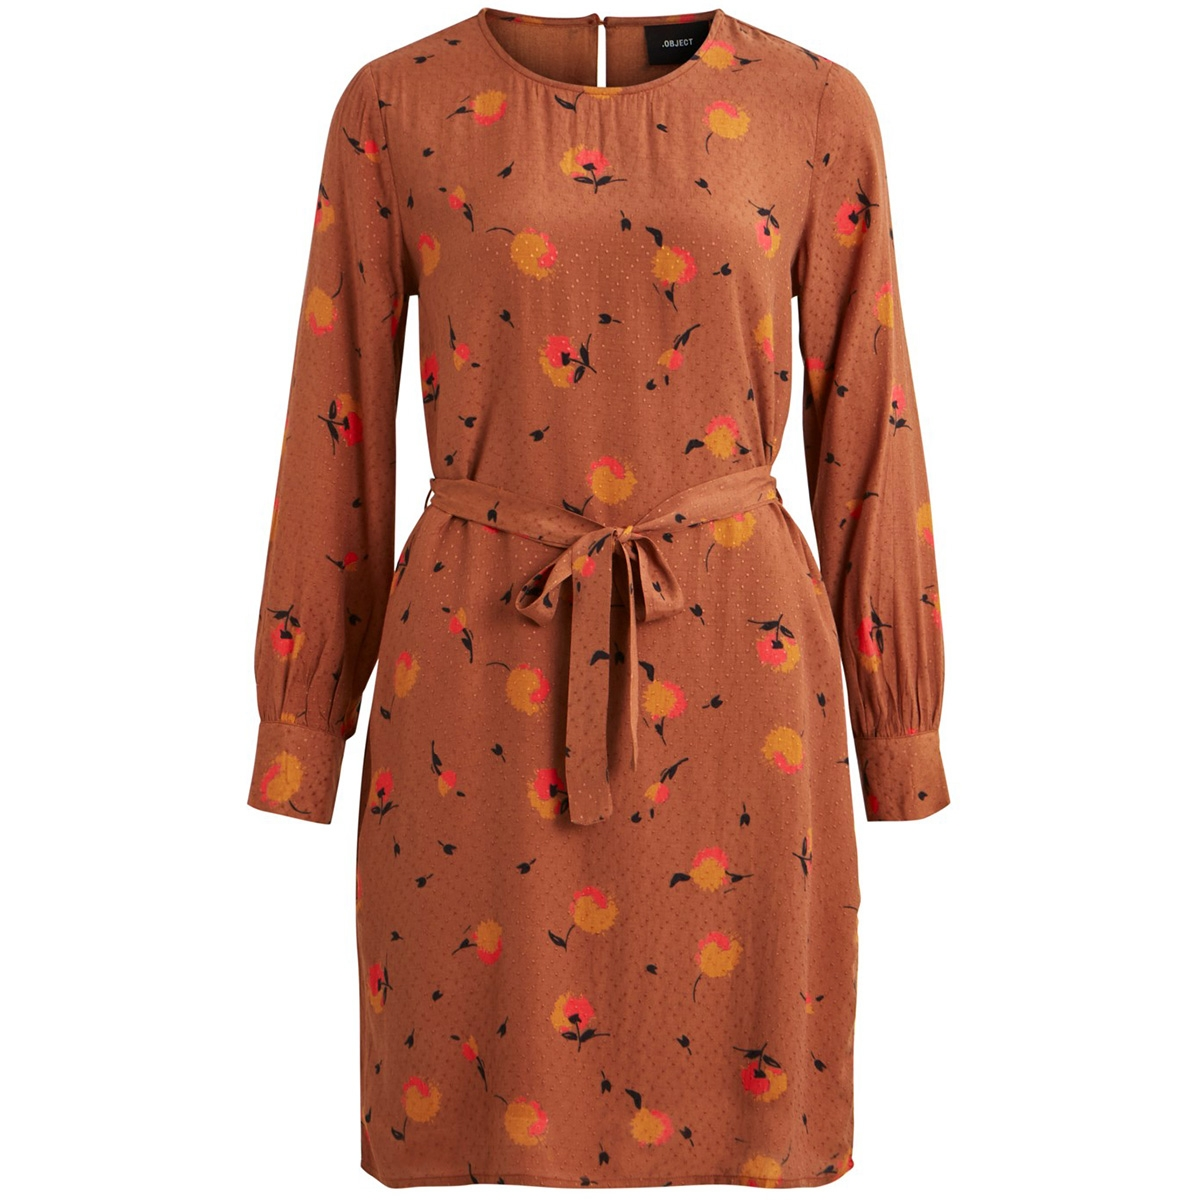 objsoyan rory l/s dress 106 23031119 object jurk brown patina/aop